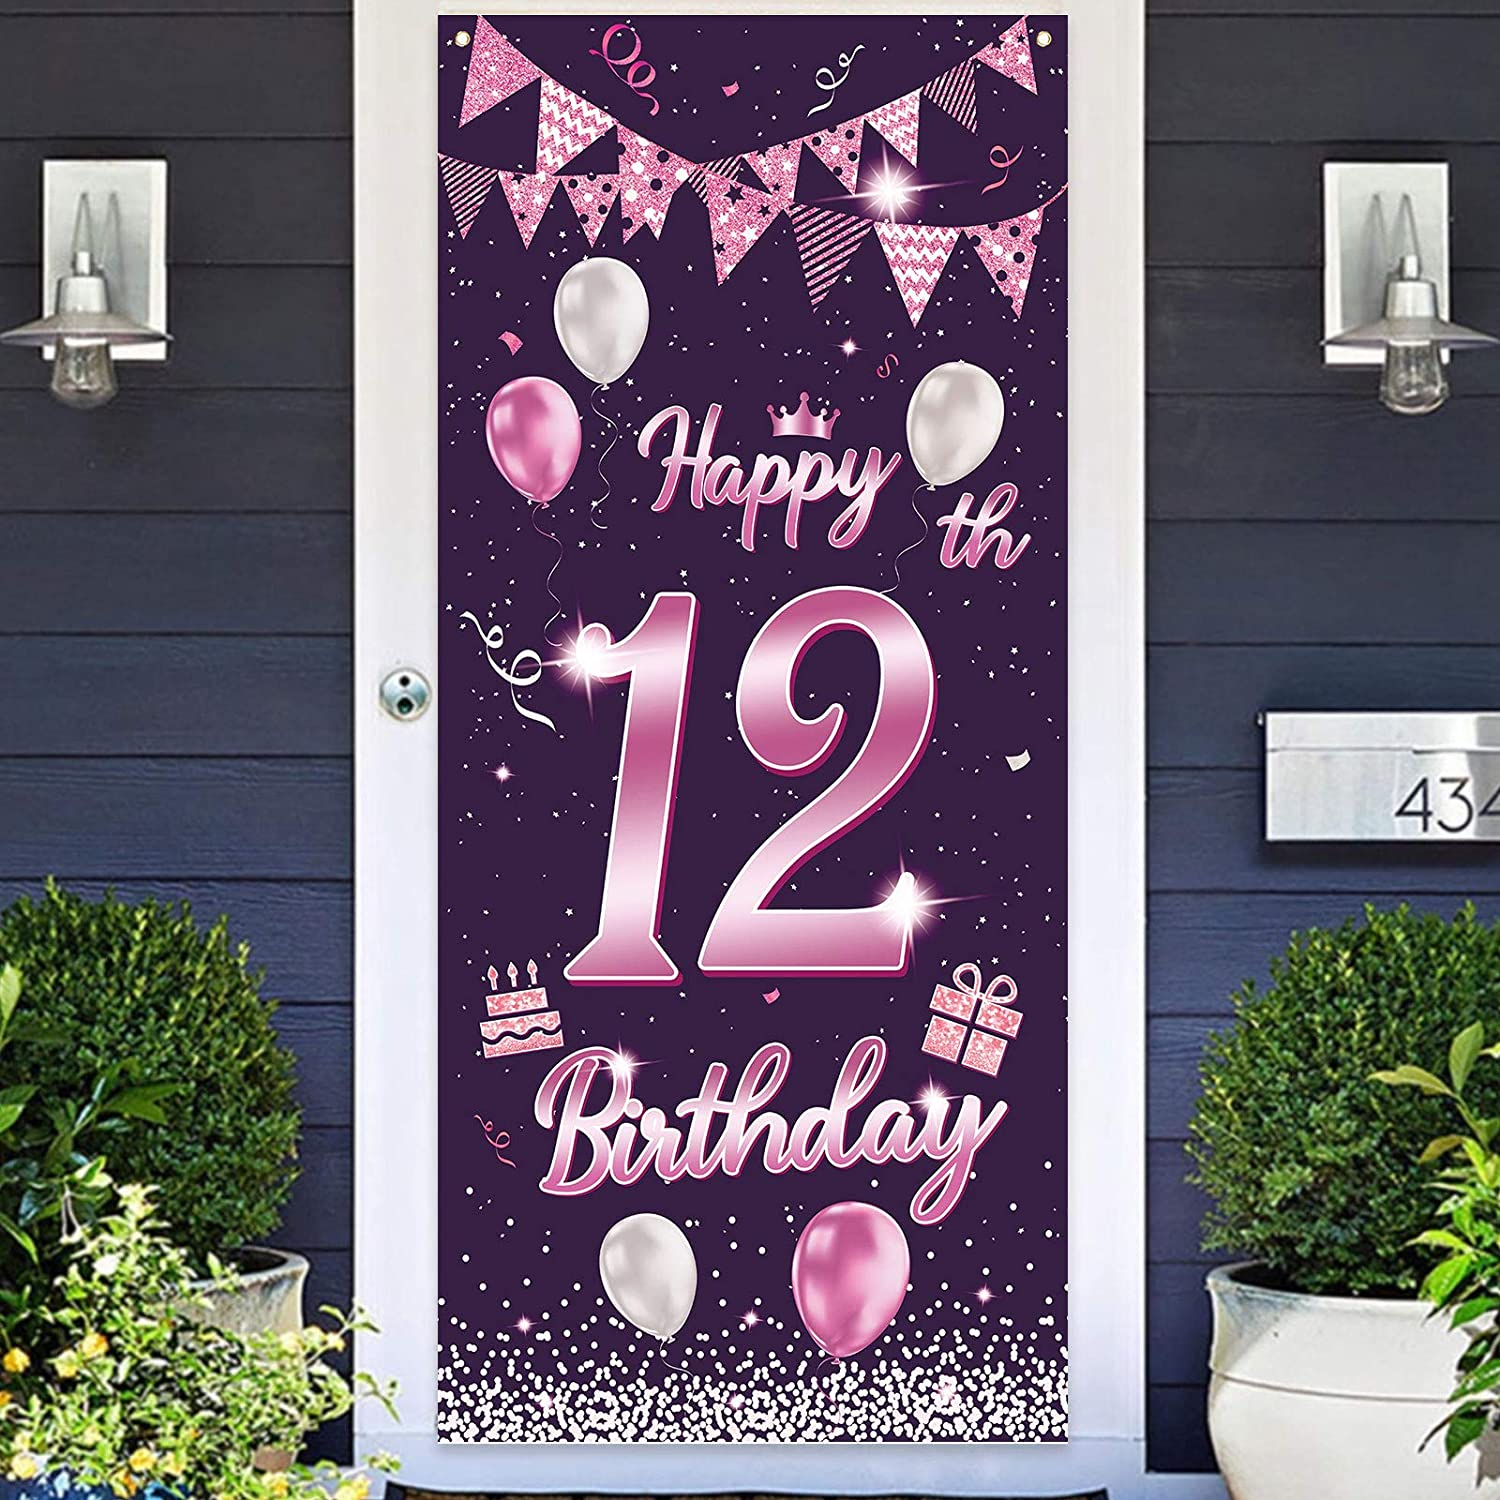 wongmode Happy 12th Birthday Door Banner Backdrop Purple Sign Theme Party Door Cover Decor for 12 Years Old Birthday to You Bunting Garland Decorations Supplies